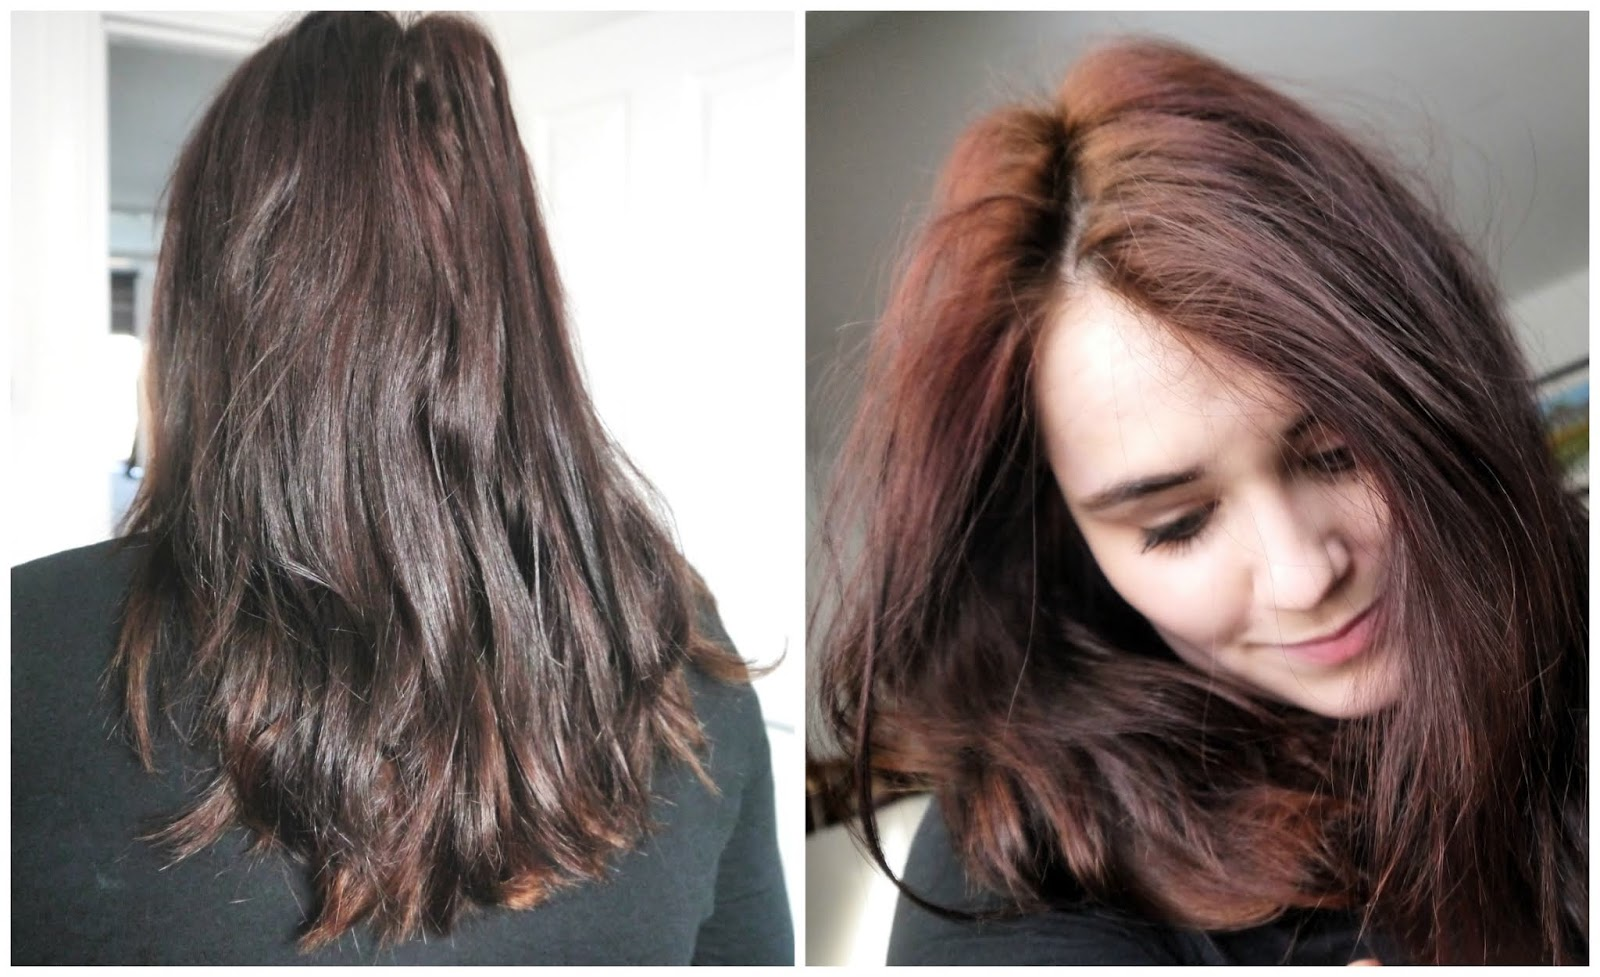 Custom Home Hair Colour With eSalon